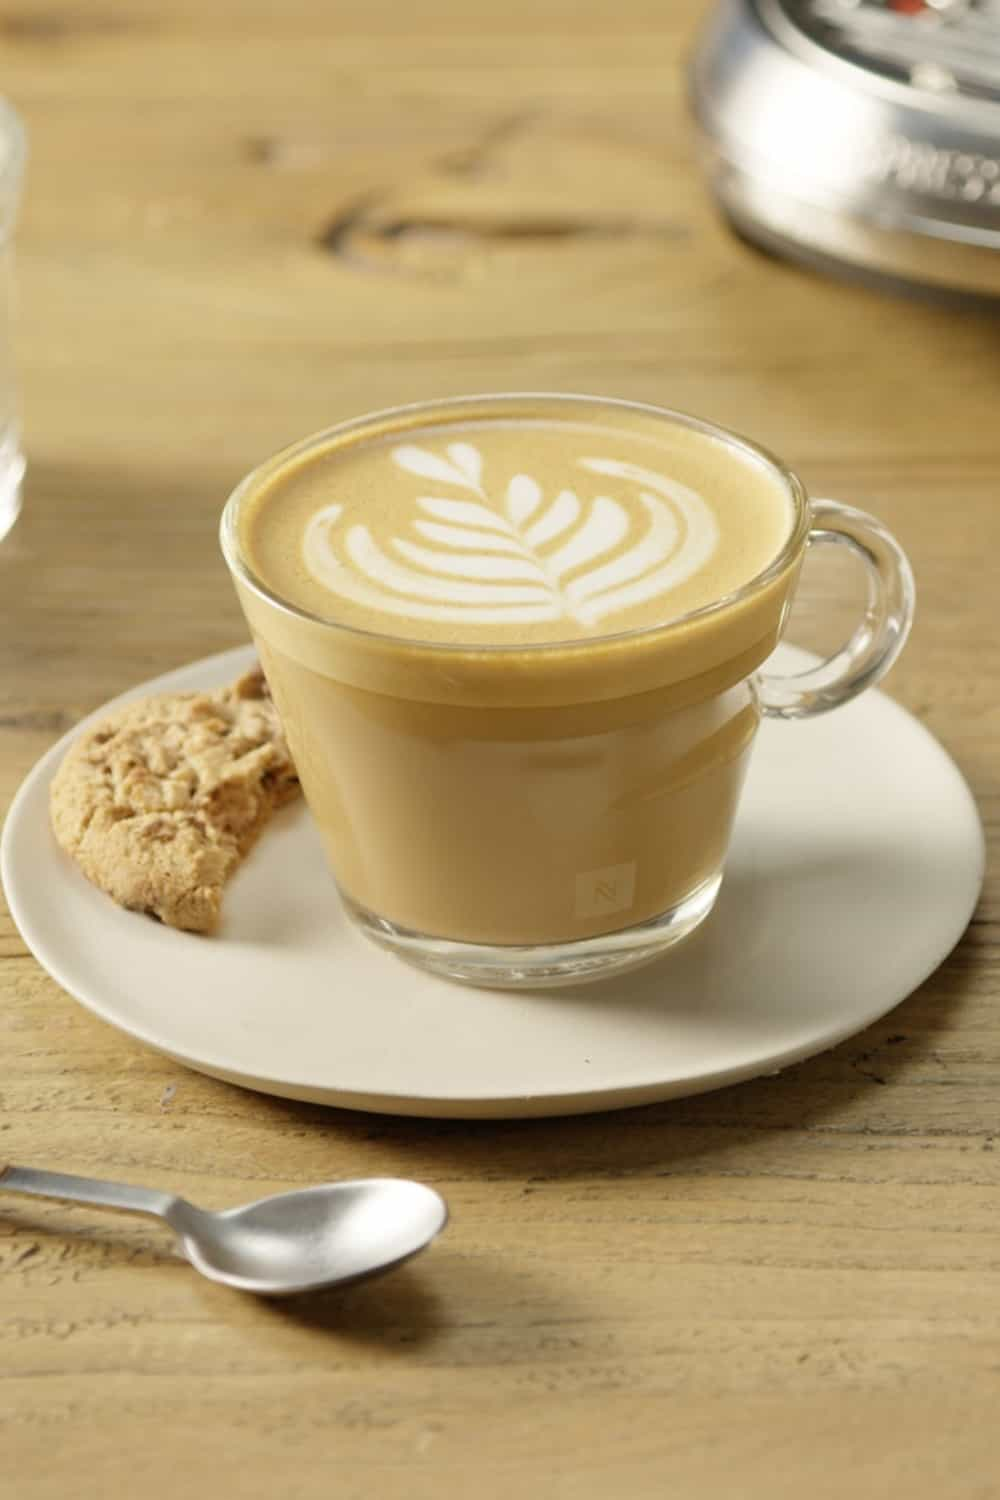 Where does the Flat White come from